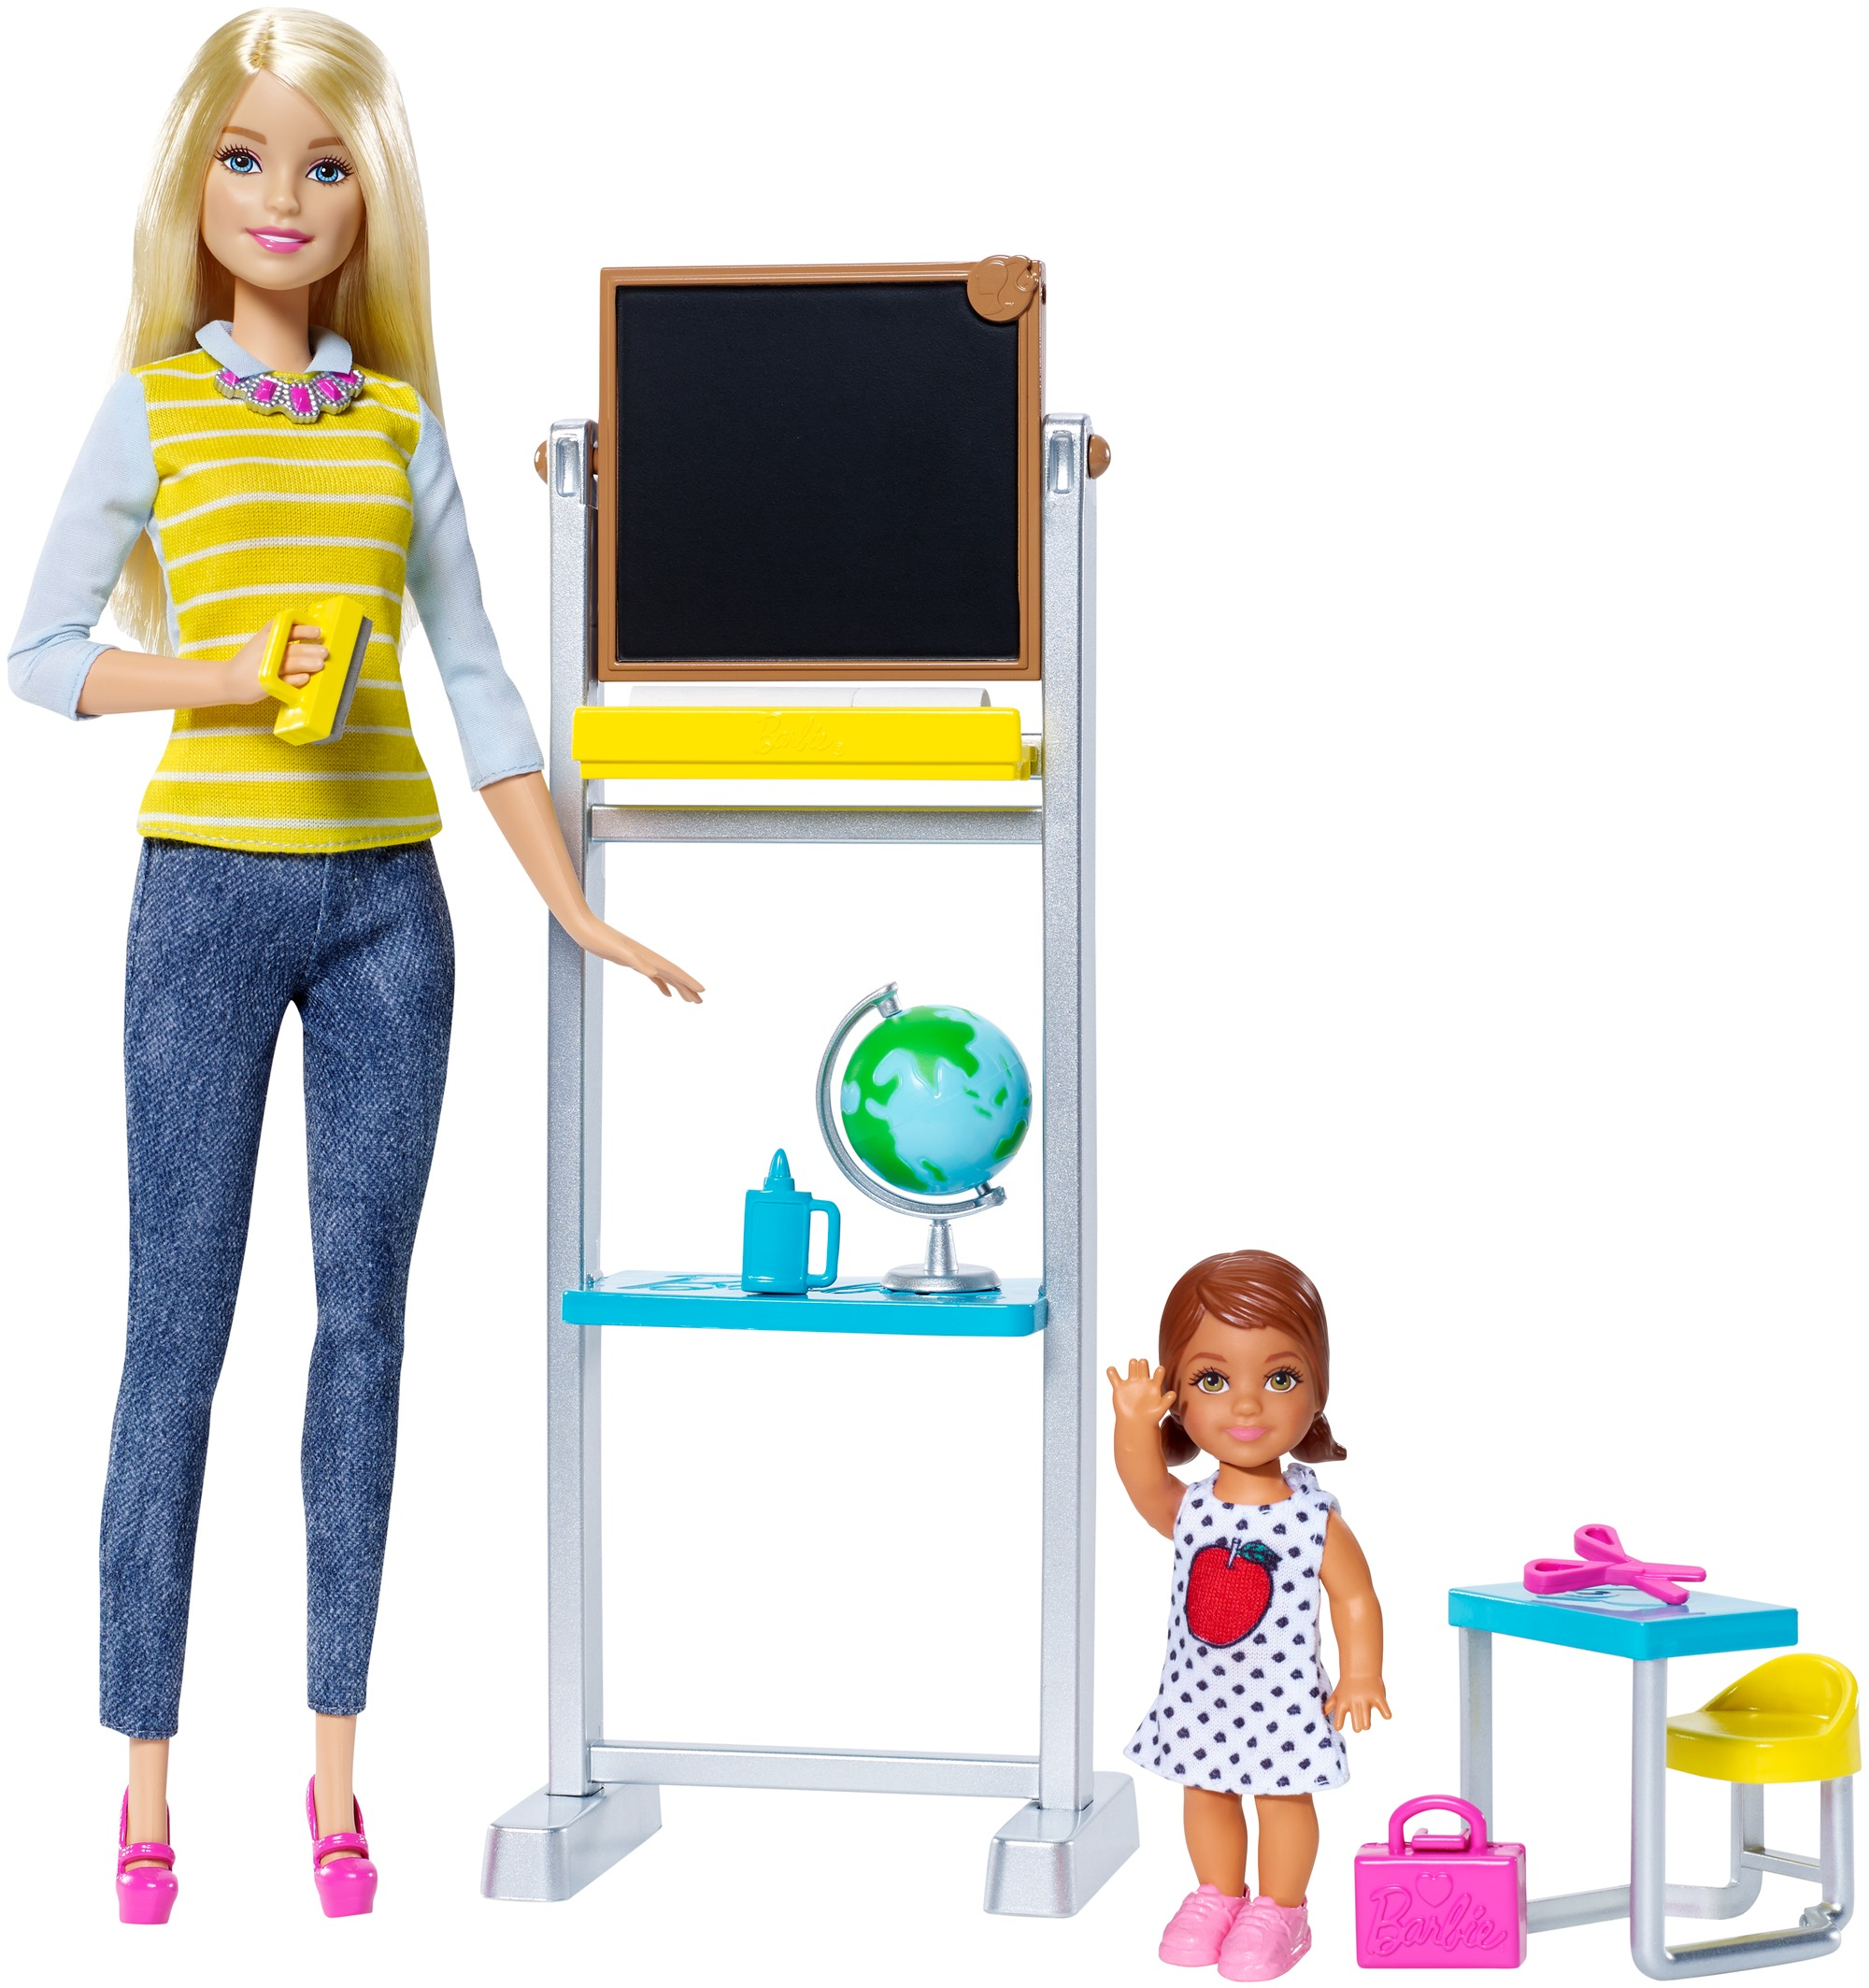 Barbie Career Teacher Doll and Playset by MTHK - CHANG AN